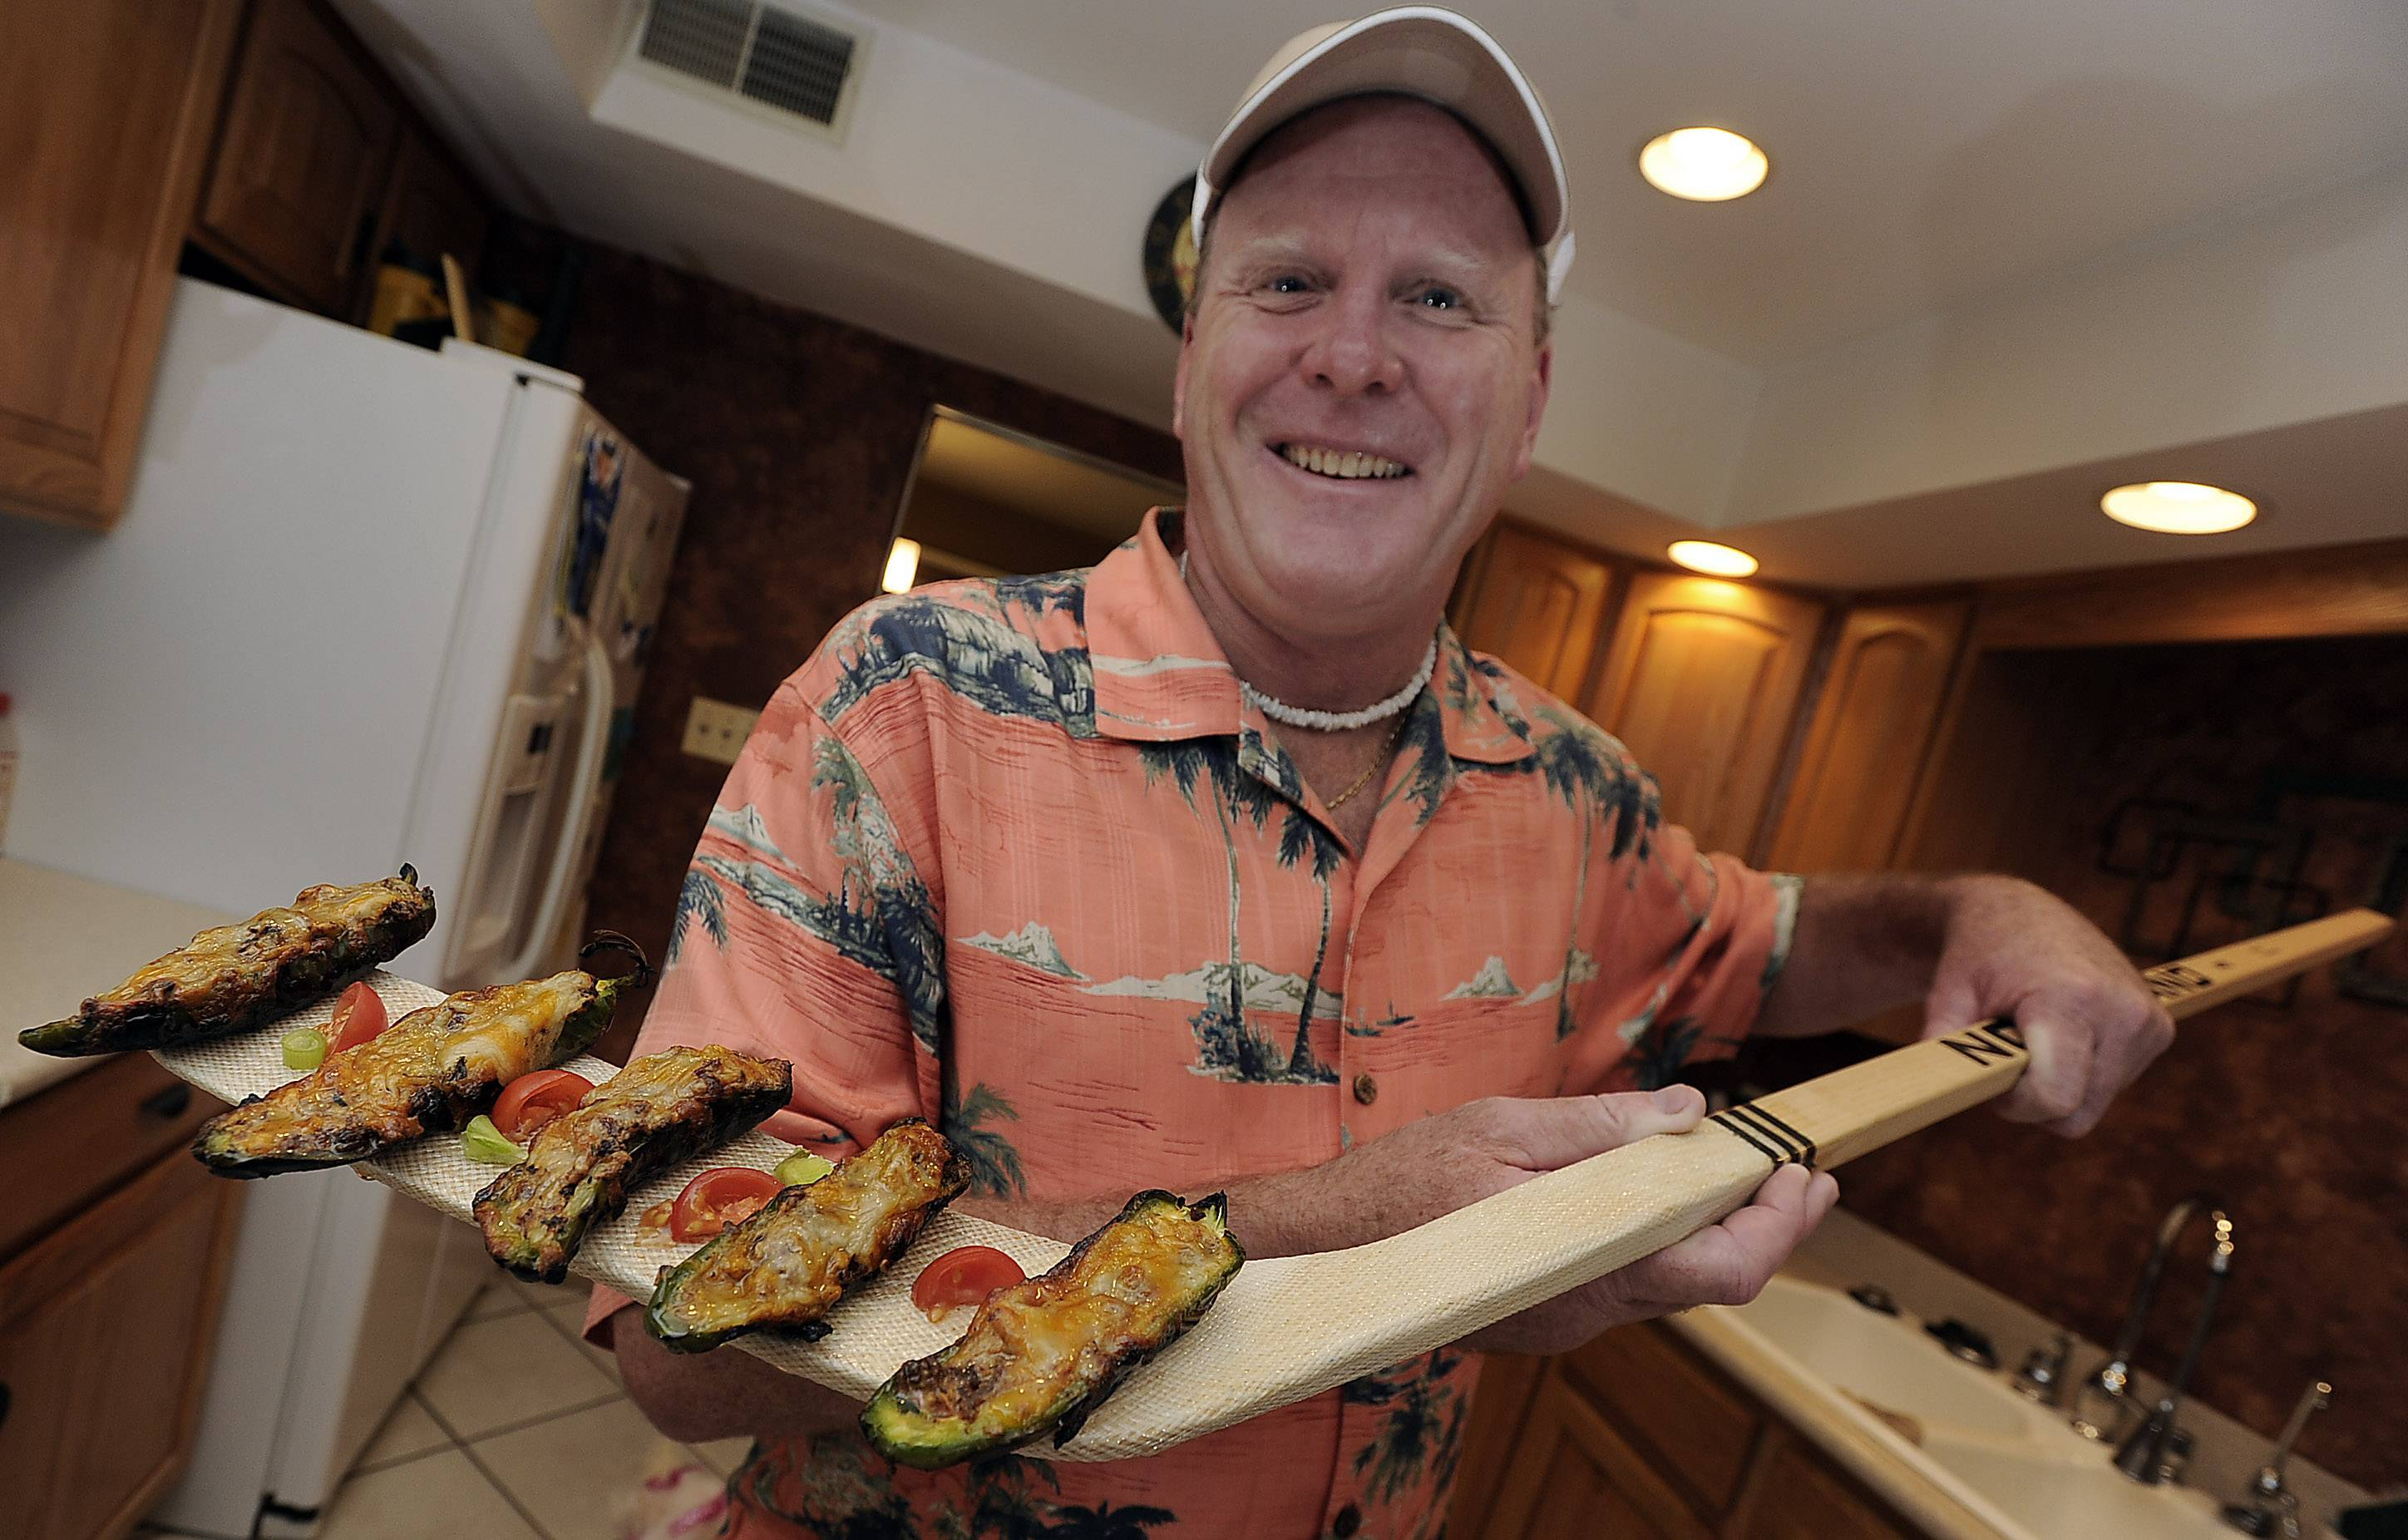 Jack Mac Intosh of Itasca serves up his famous Jalapeno Pirogues on hockey stick. When he's not cooking, Mac Intosh is a volunteer coach for youth sports.